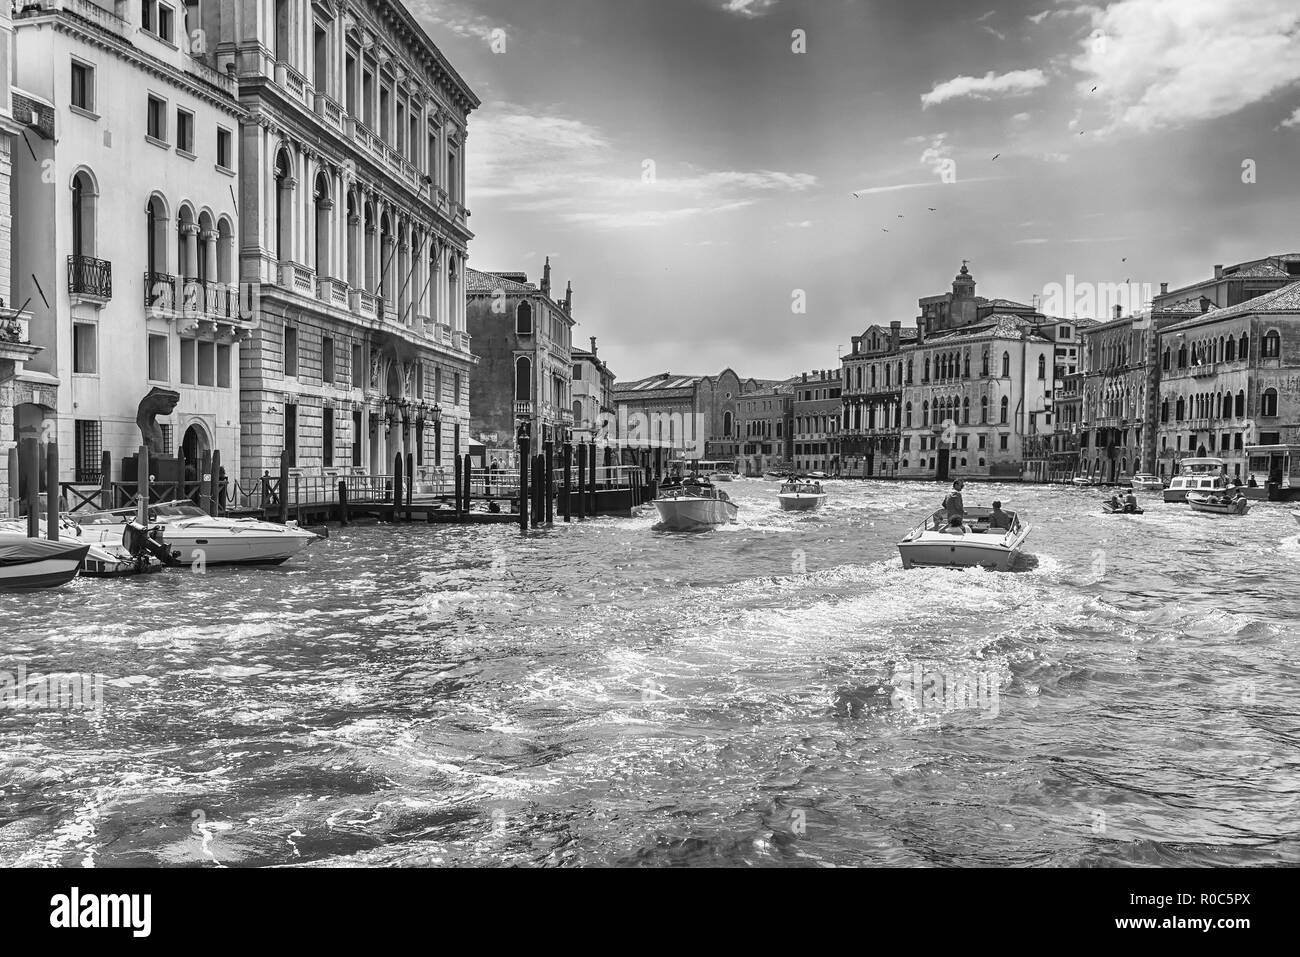 VENICE, ITALY - APRIL 29: Scenic architecture along the Grand Canal in San Marco district of Venice, Italy, April 29, 2018 - Stock Image